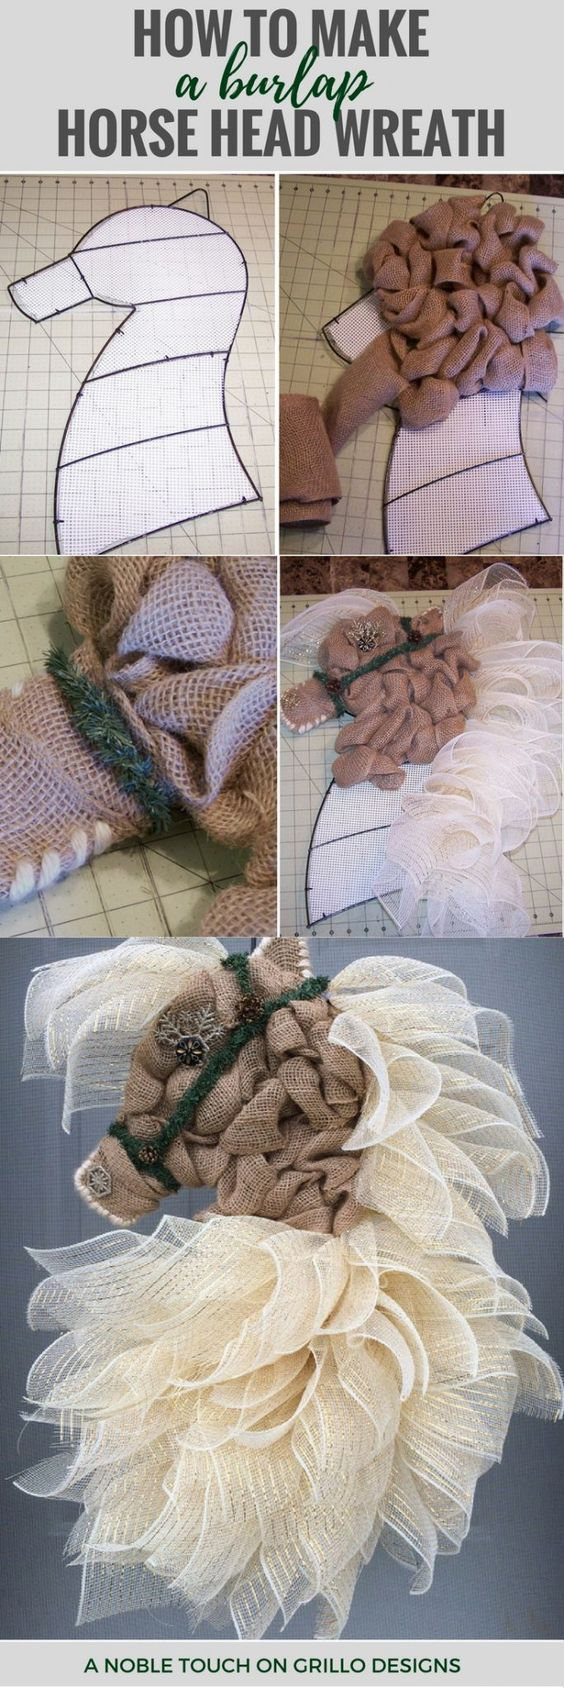 DIY horse head wreath tutorial - Michelle from A Noble Touch shares how to make a gorgeous decorative horse head wreath from burlap!